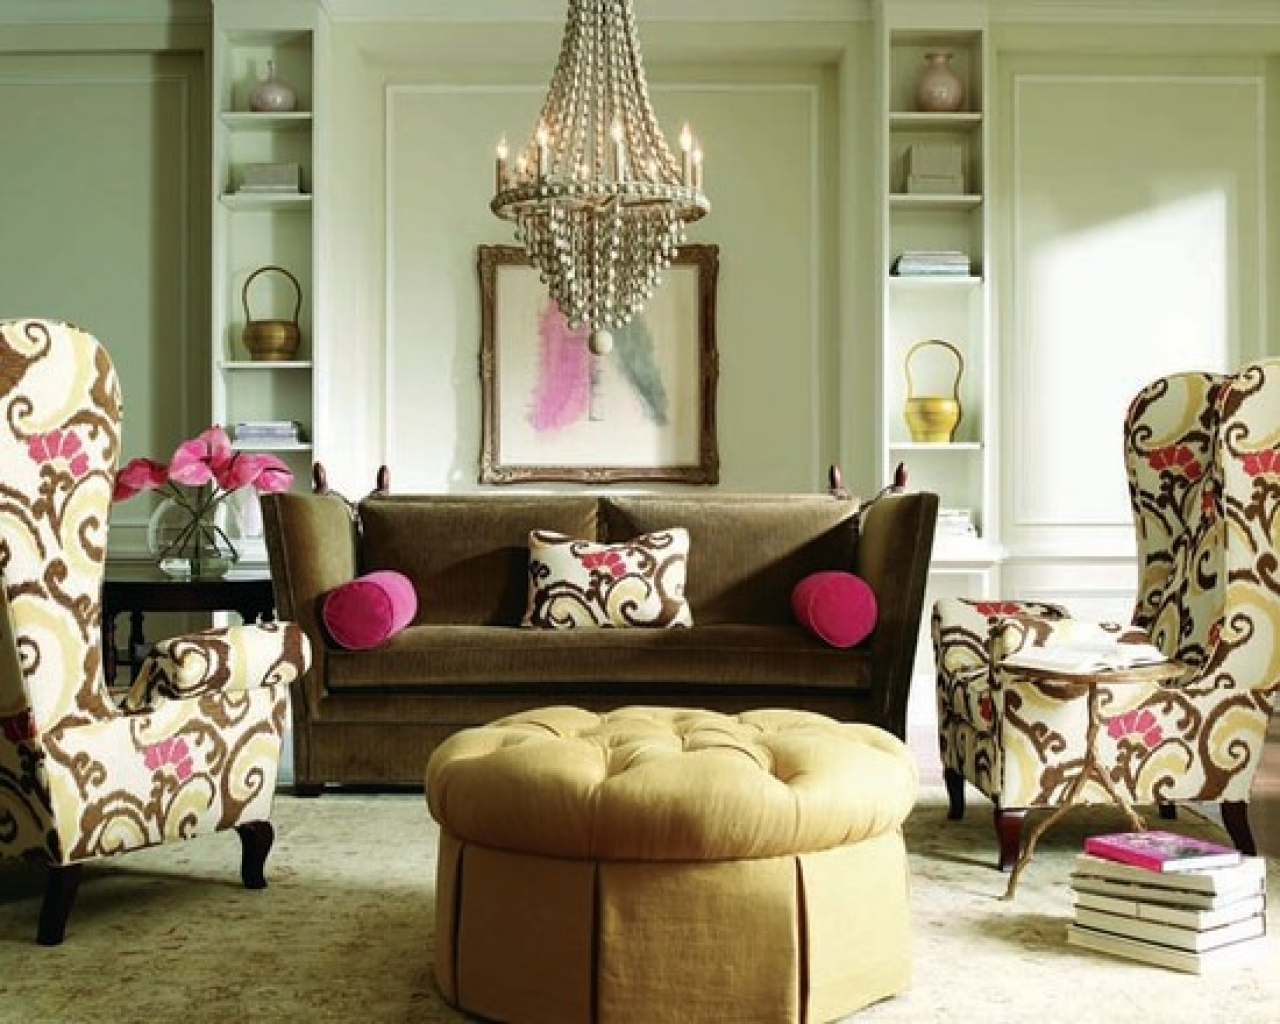 25 stunning eclectic living room decor ideas for Living room decorating ideas pictures